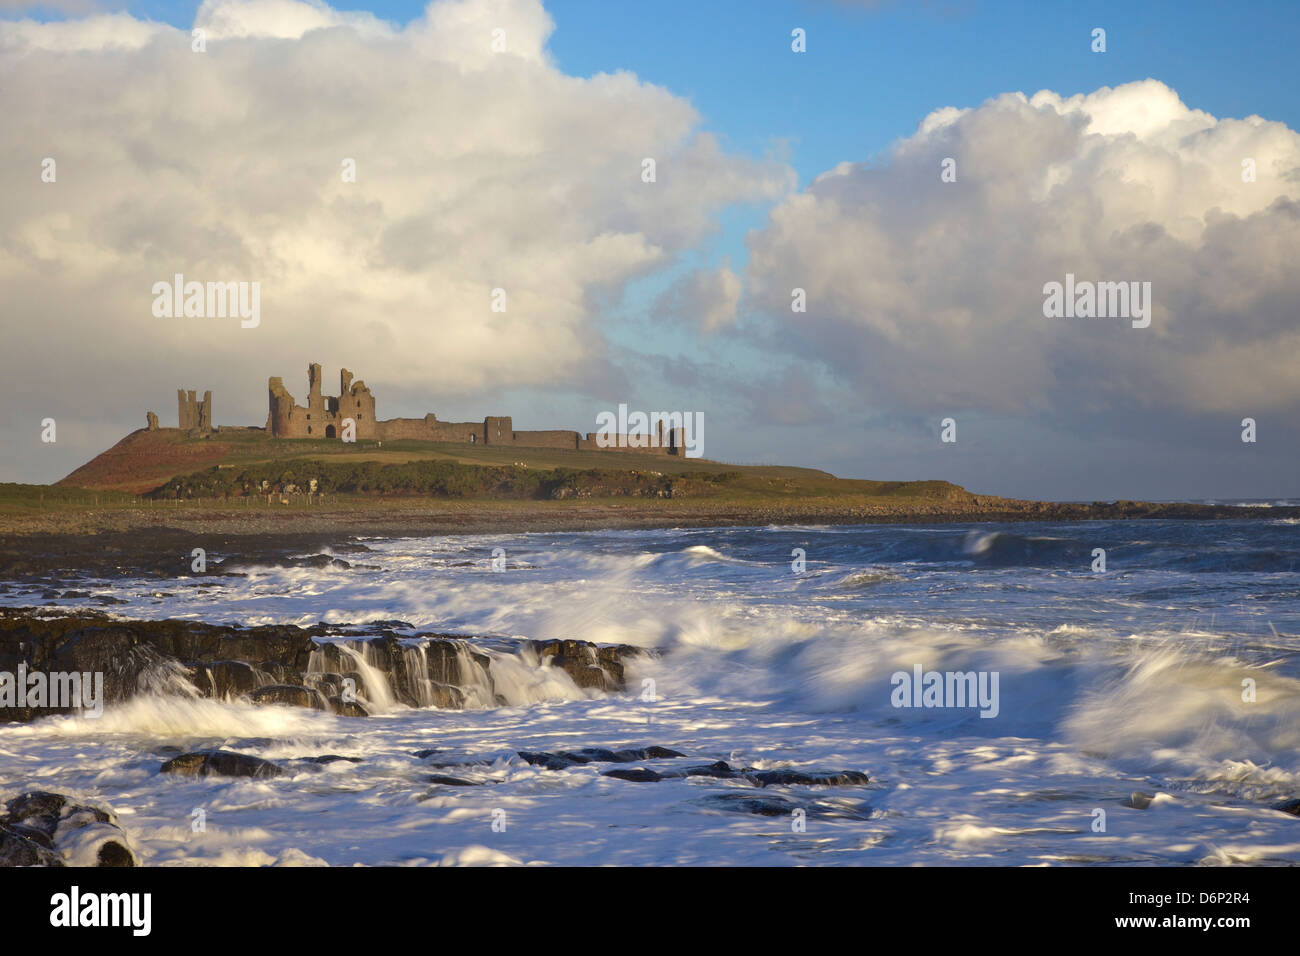 Surf on rocks, Dunstanburgh Castle, Northumberland, England, United Kingdom, Europe - Stock Image